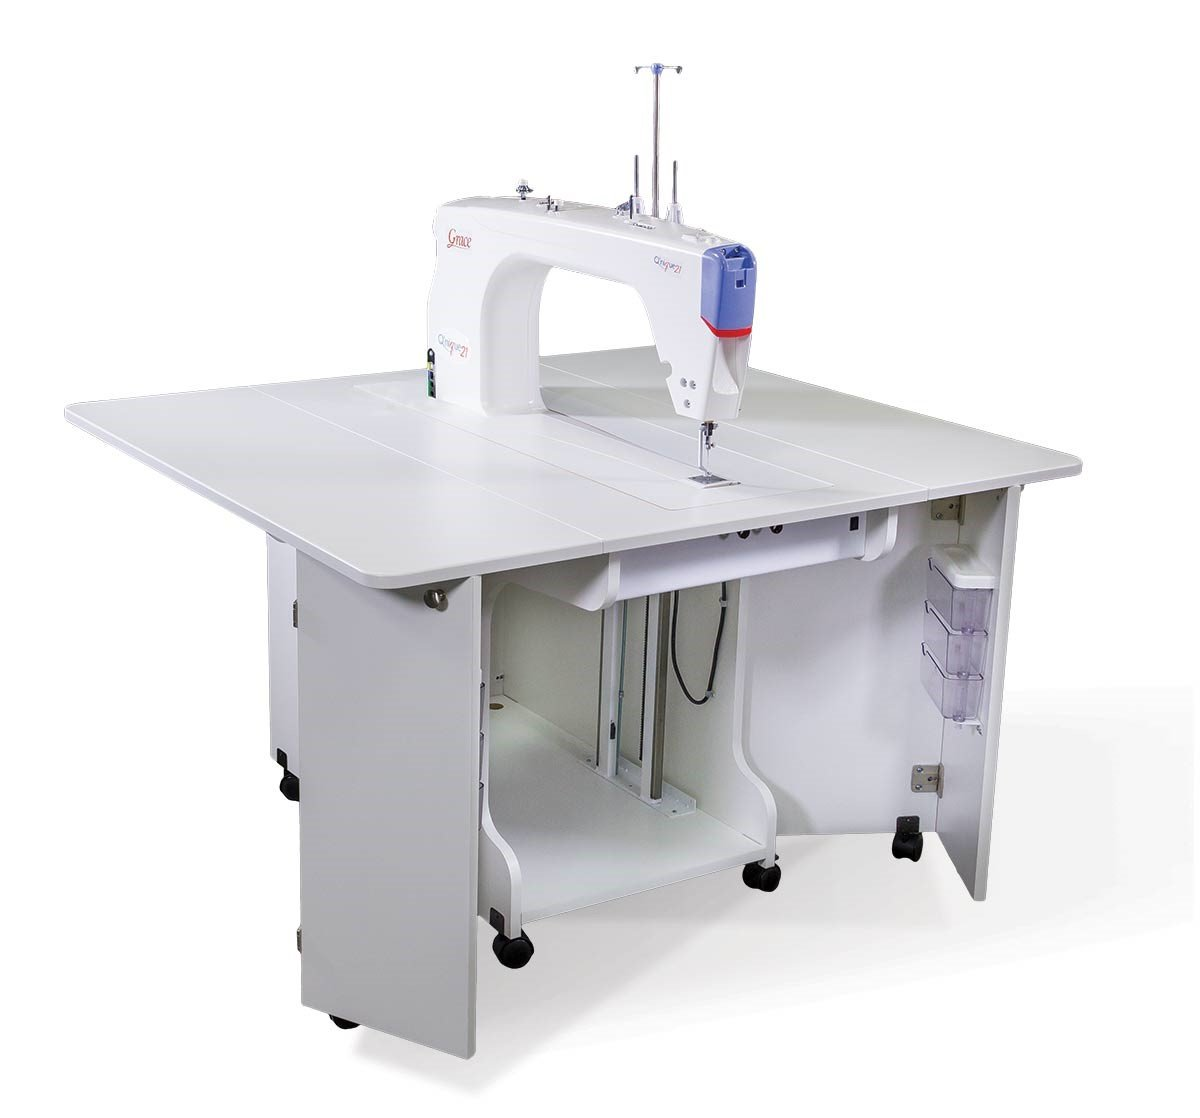 2 Qnique Sit Down Table Quilting Options : sit down quilting machine - Adamdwight.com